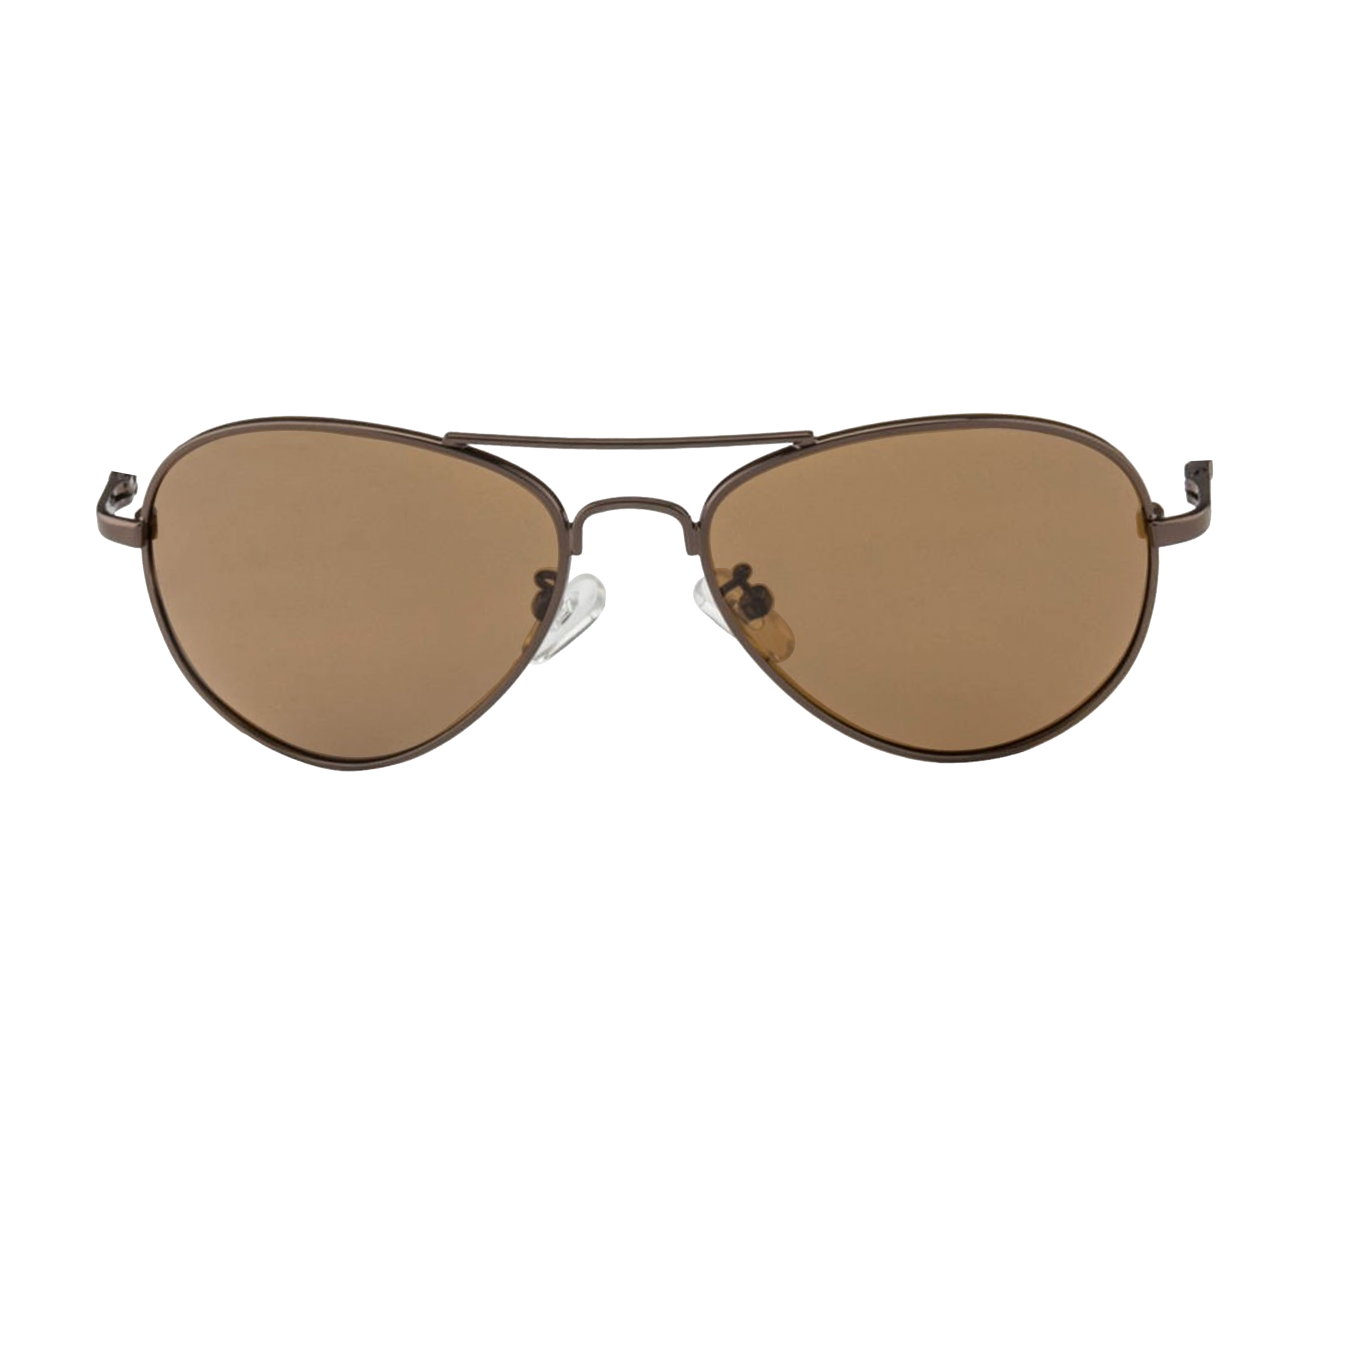 Sunglasses clipart aviator. Picture transparentpng